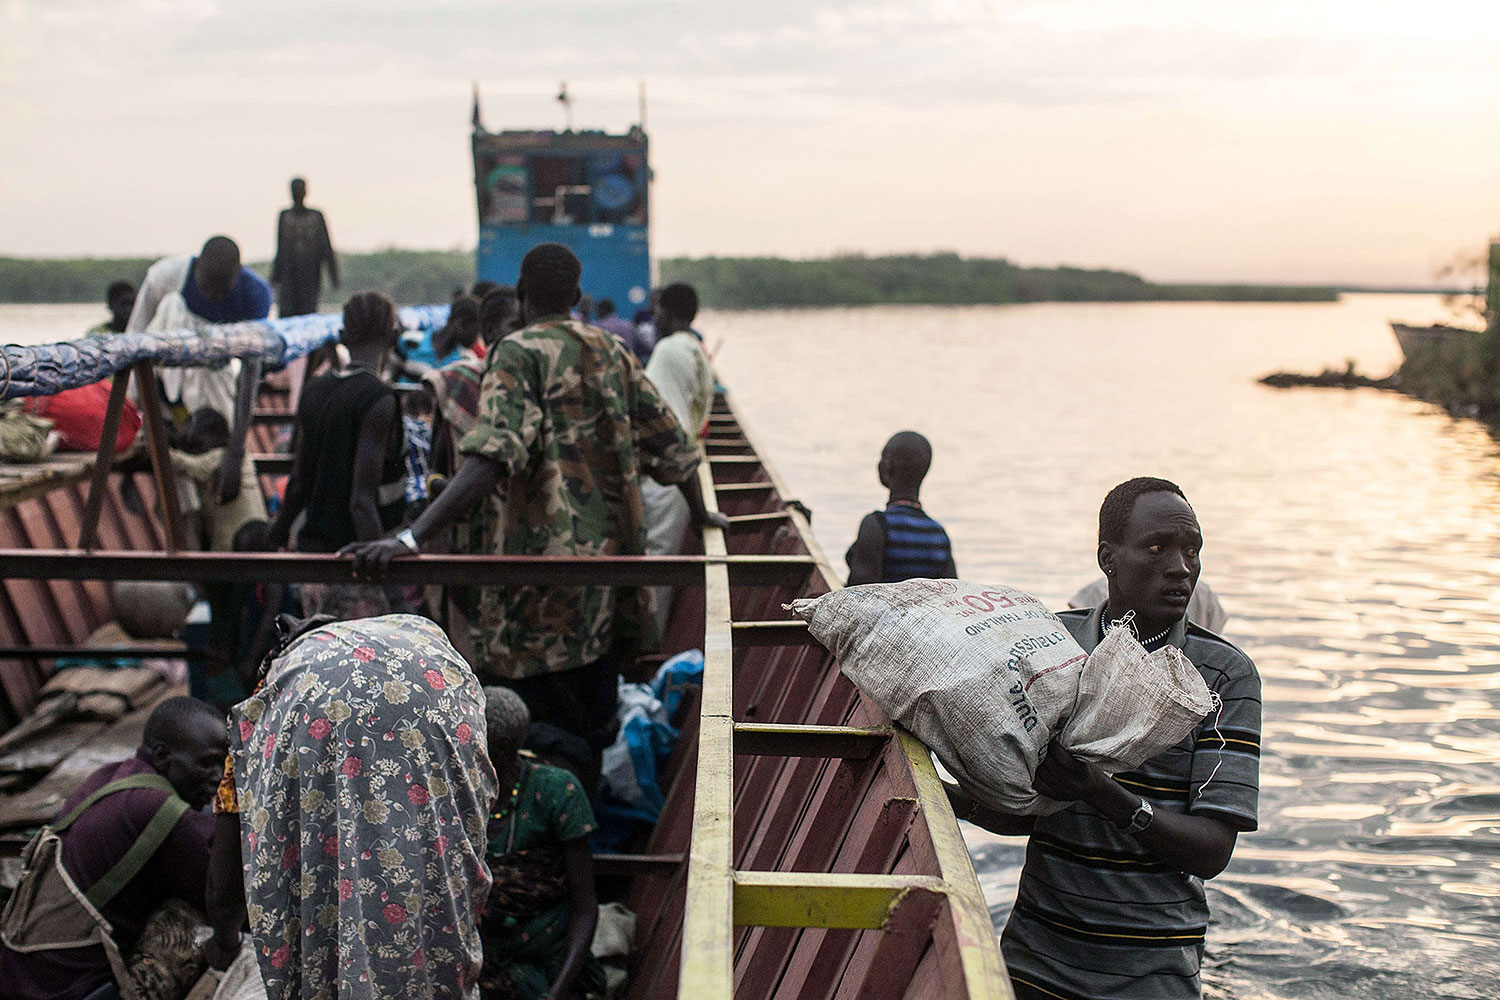 People unload the few belongings on Jan. 9, 2014 at Minkammen, South Sudan that they were able to bring with them to the camps.